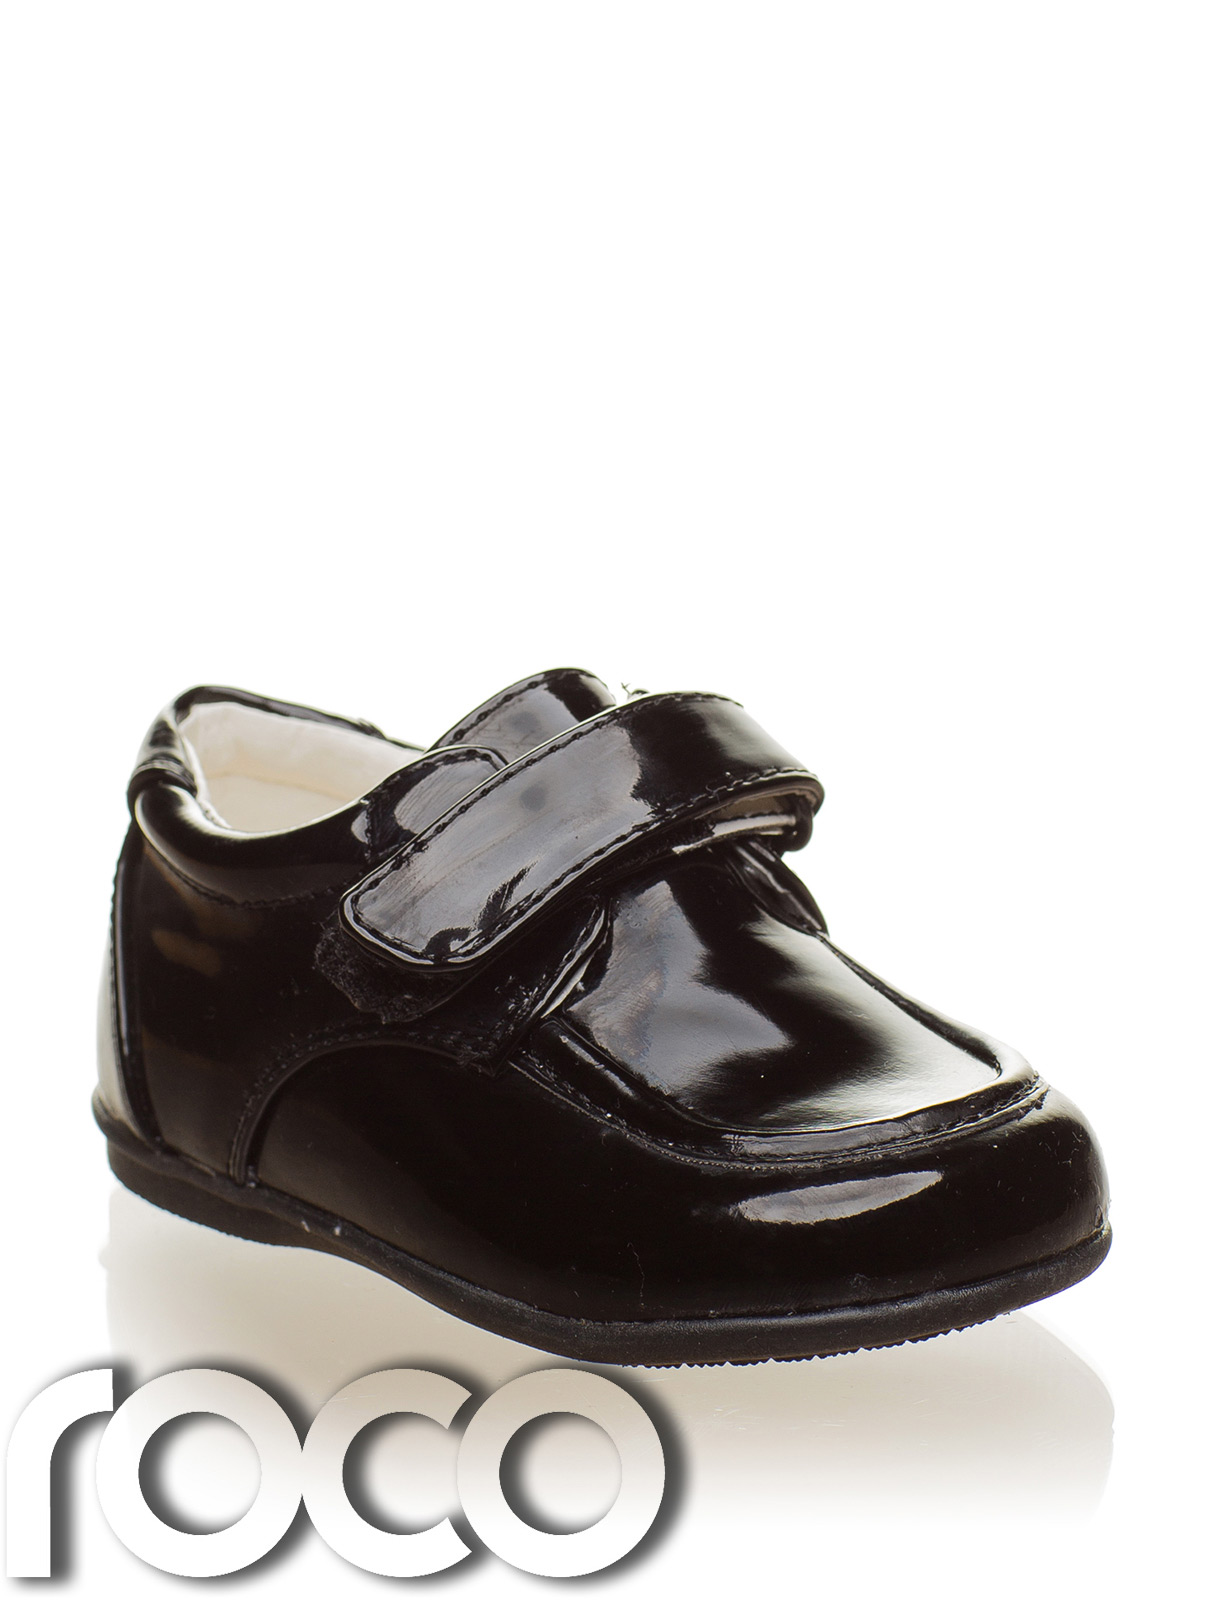 Infant Boy Dress Shoes Size